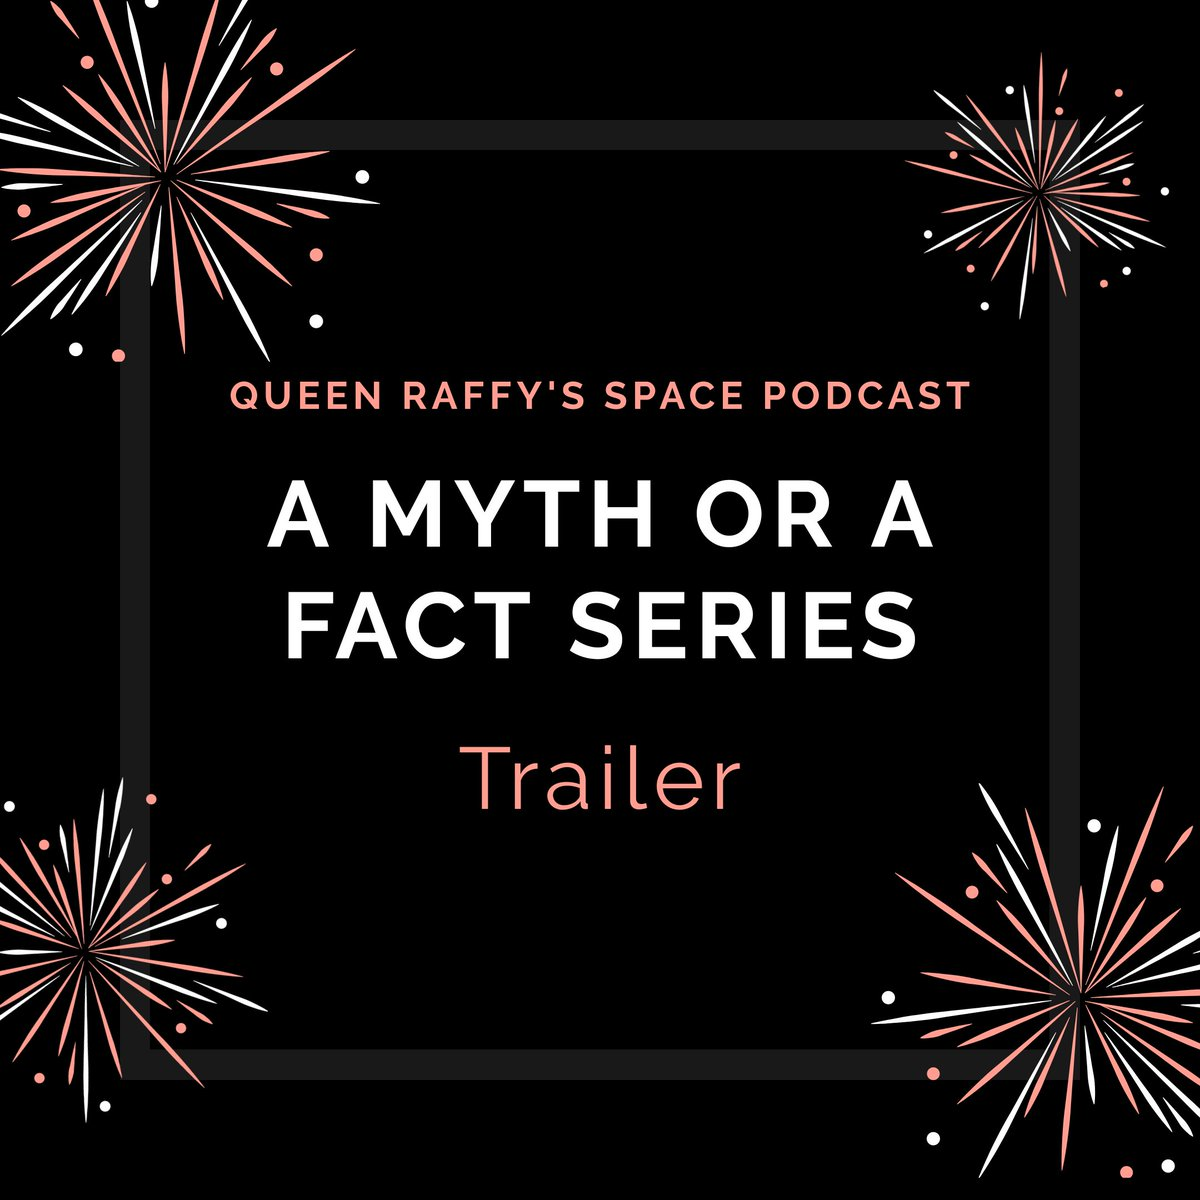 A new segment Alert!!!!!!!Listen to Queen Raffy's Space to find out what it would be about...👇🏿 AMythorAFact Trailer 👇🏿 https://t.co/o2MYgLfG7I #Podcast #PodernFamily  #Podcastsonspotify #PodsInNaija #PodcastsRecommendation #SundayThoughts  #sundayvibes https://t.co/KBdk0uB1y7